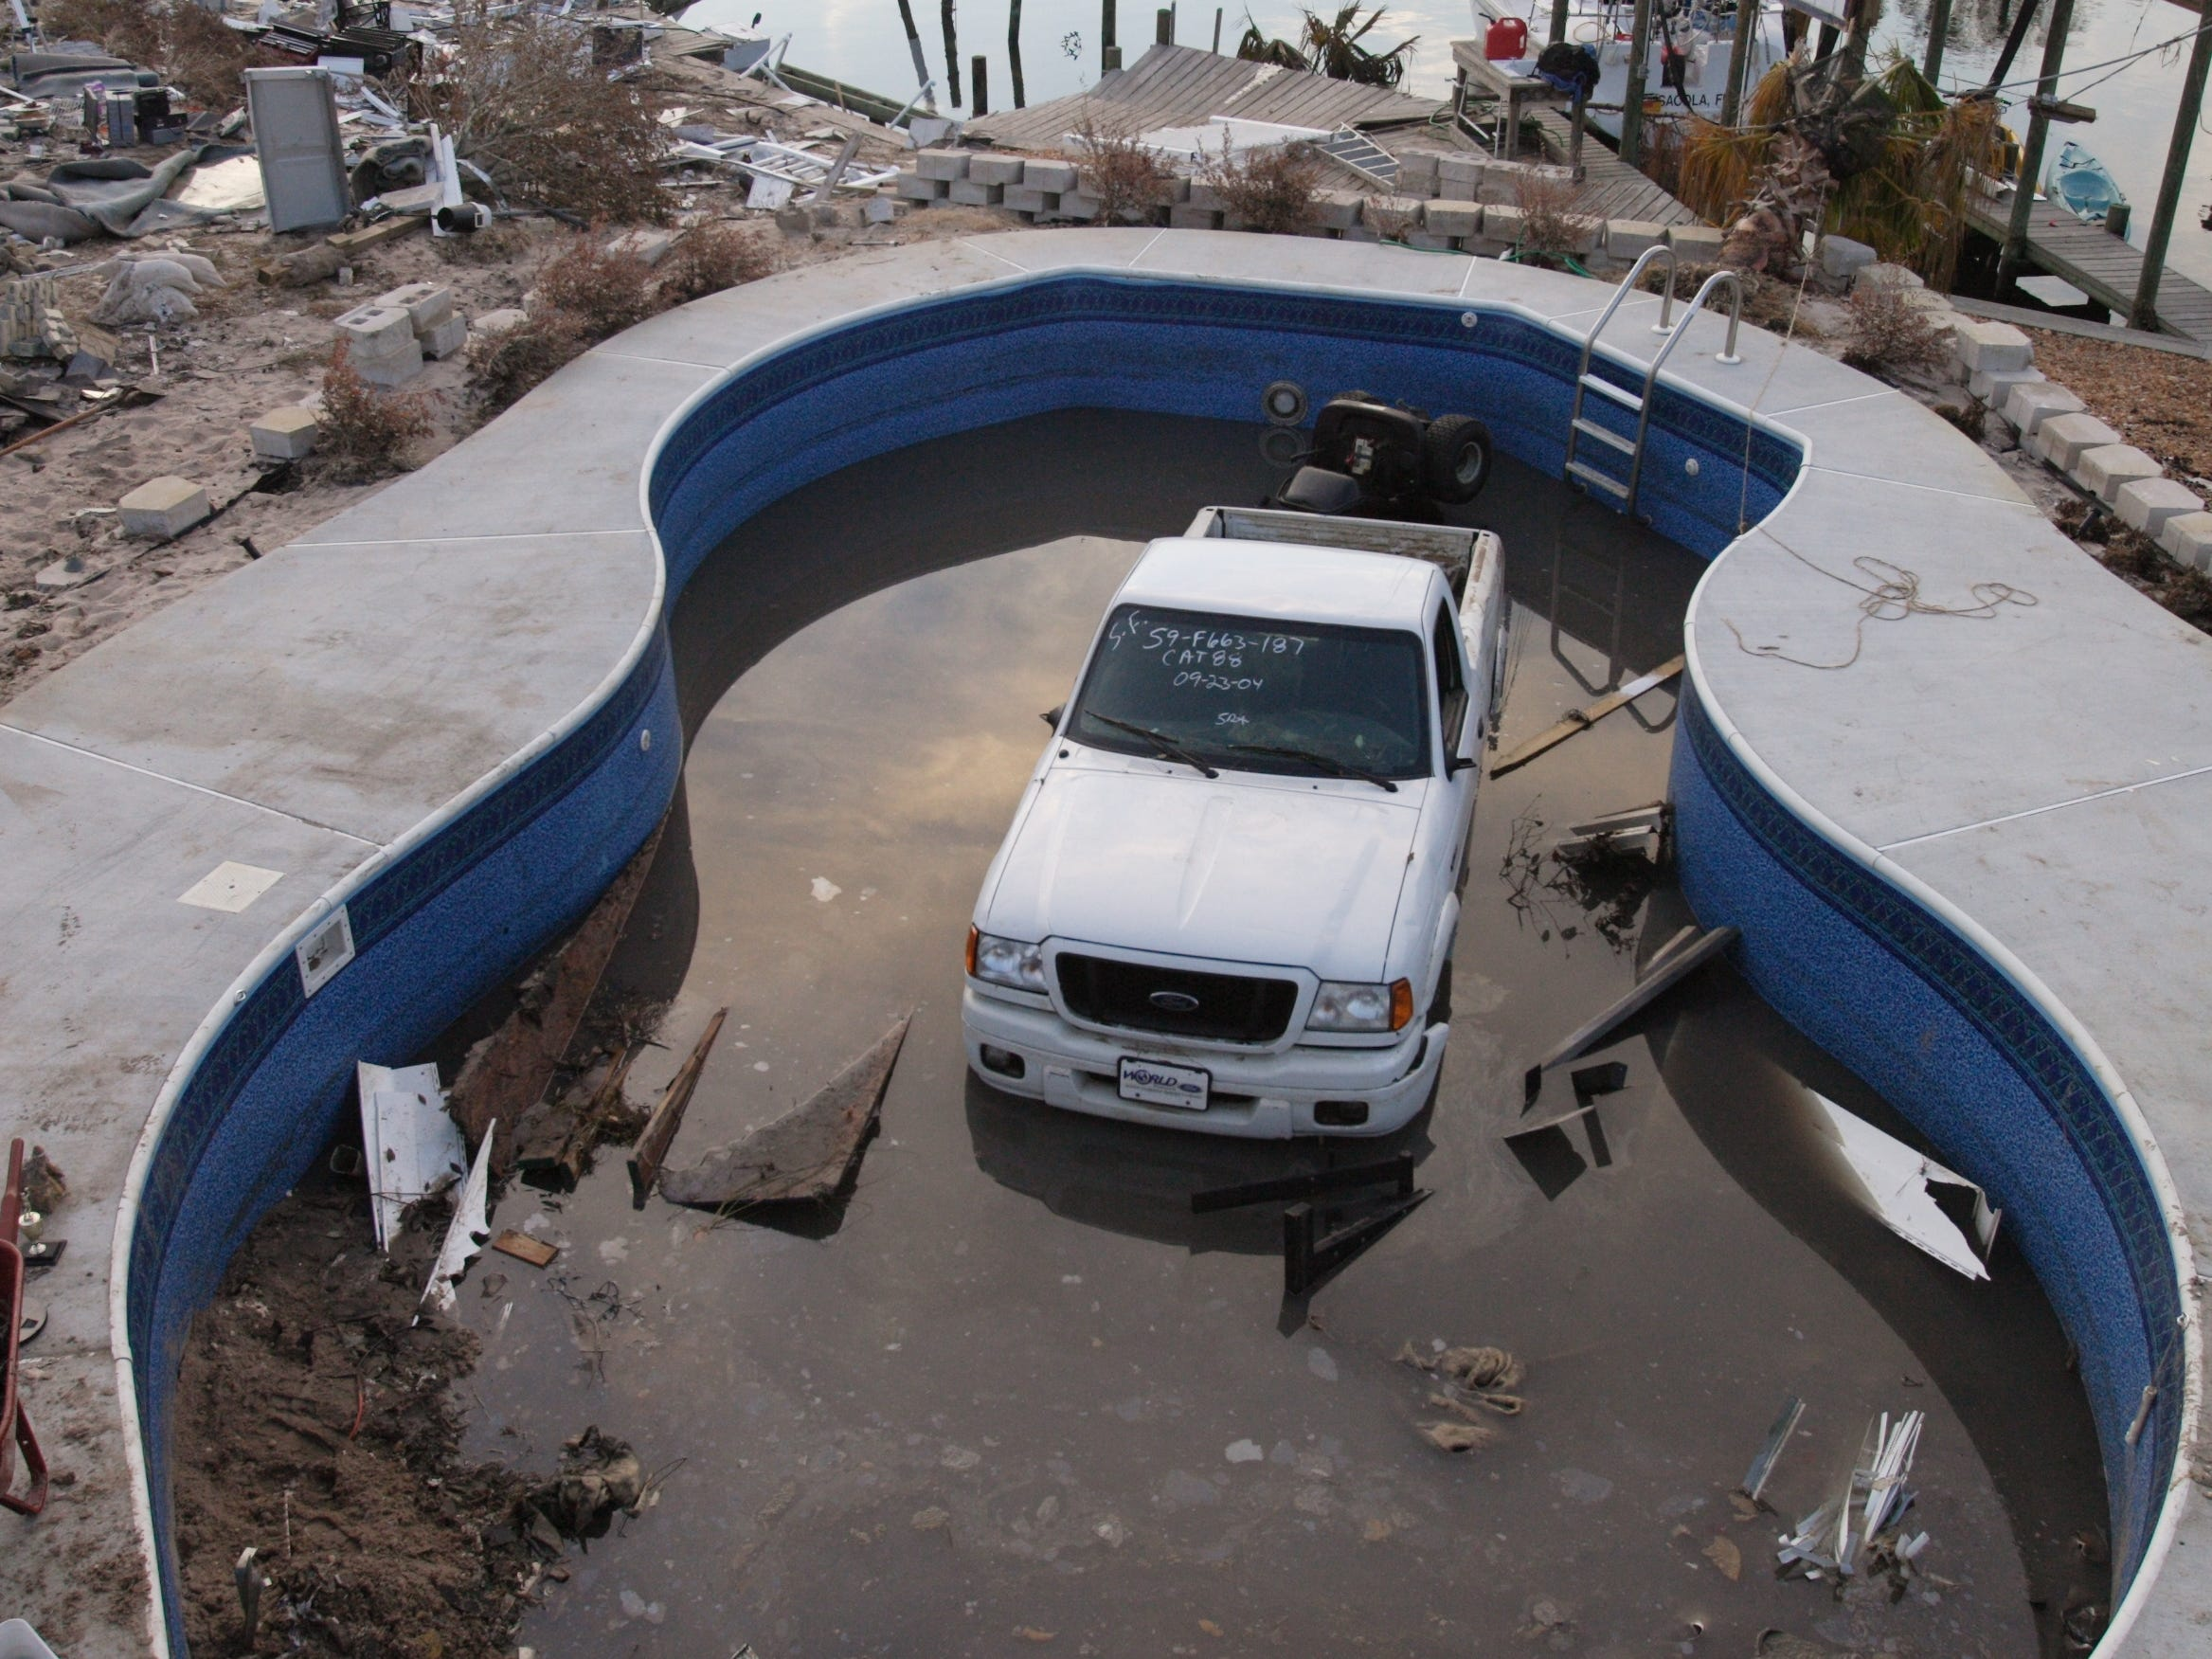 Tom and Kay Matsan's 2004 Ford Ranger Truck, with only 1000 miles on it still sits in the swimming pool behind their home one week after Hurricane Ivan hit in Pensacola, Fla. Sept, 24, 2004. The truck was parked the other direction in their garage and the storm deposited it into their pool facing the other way.